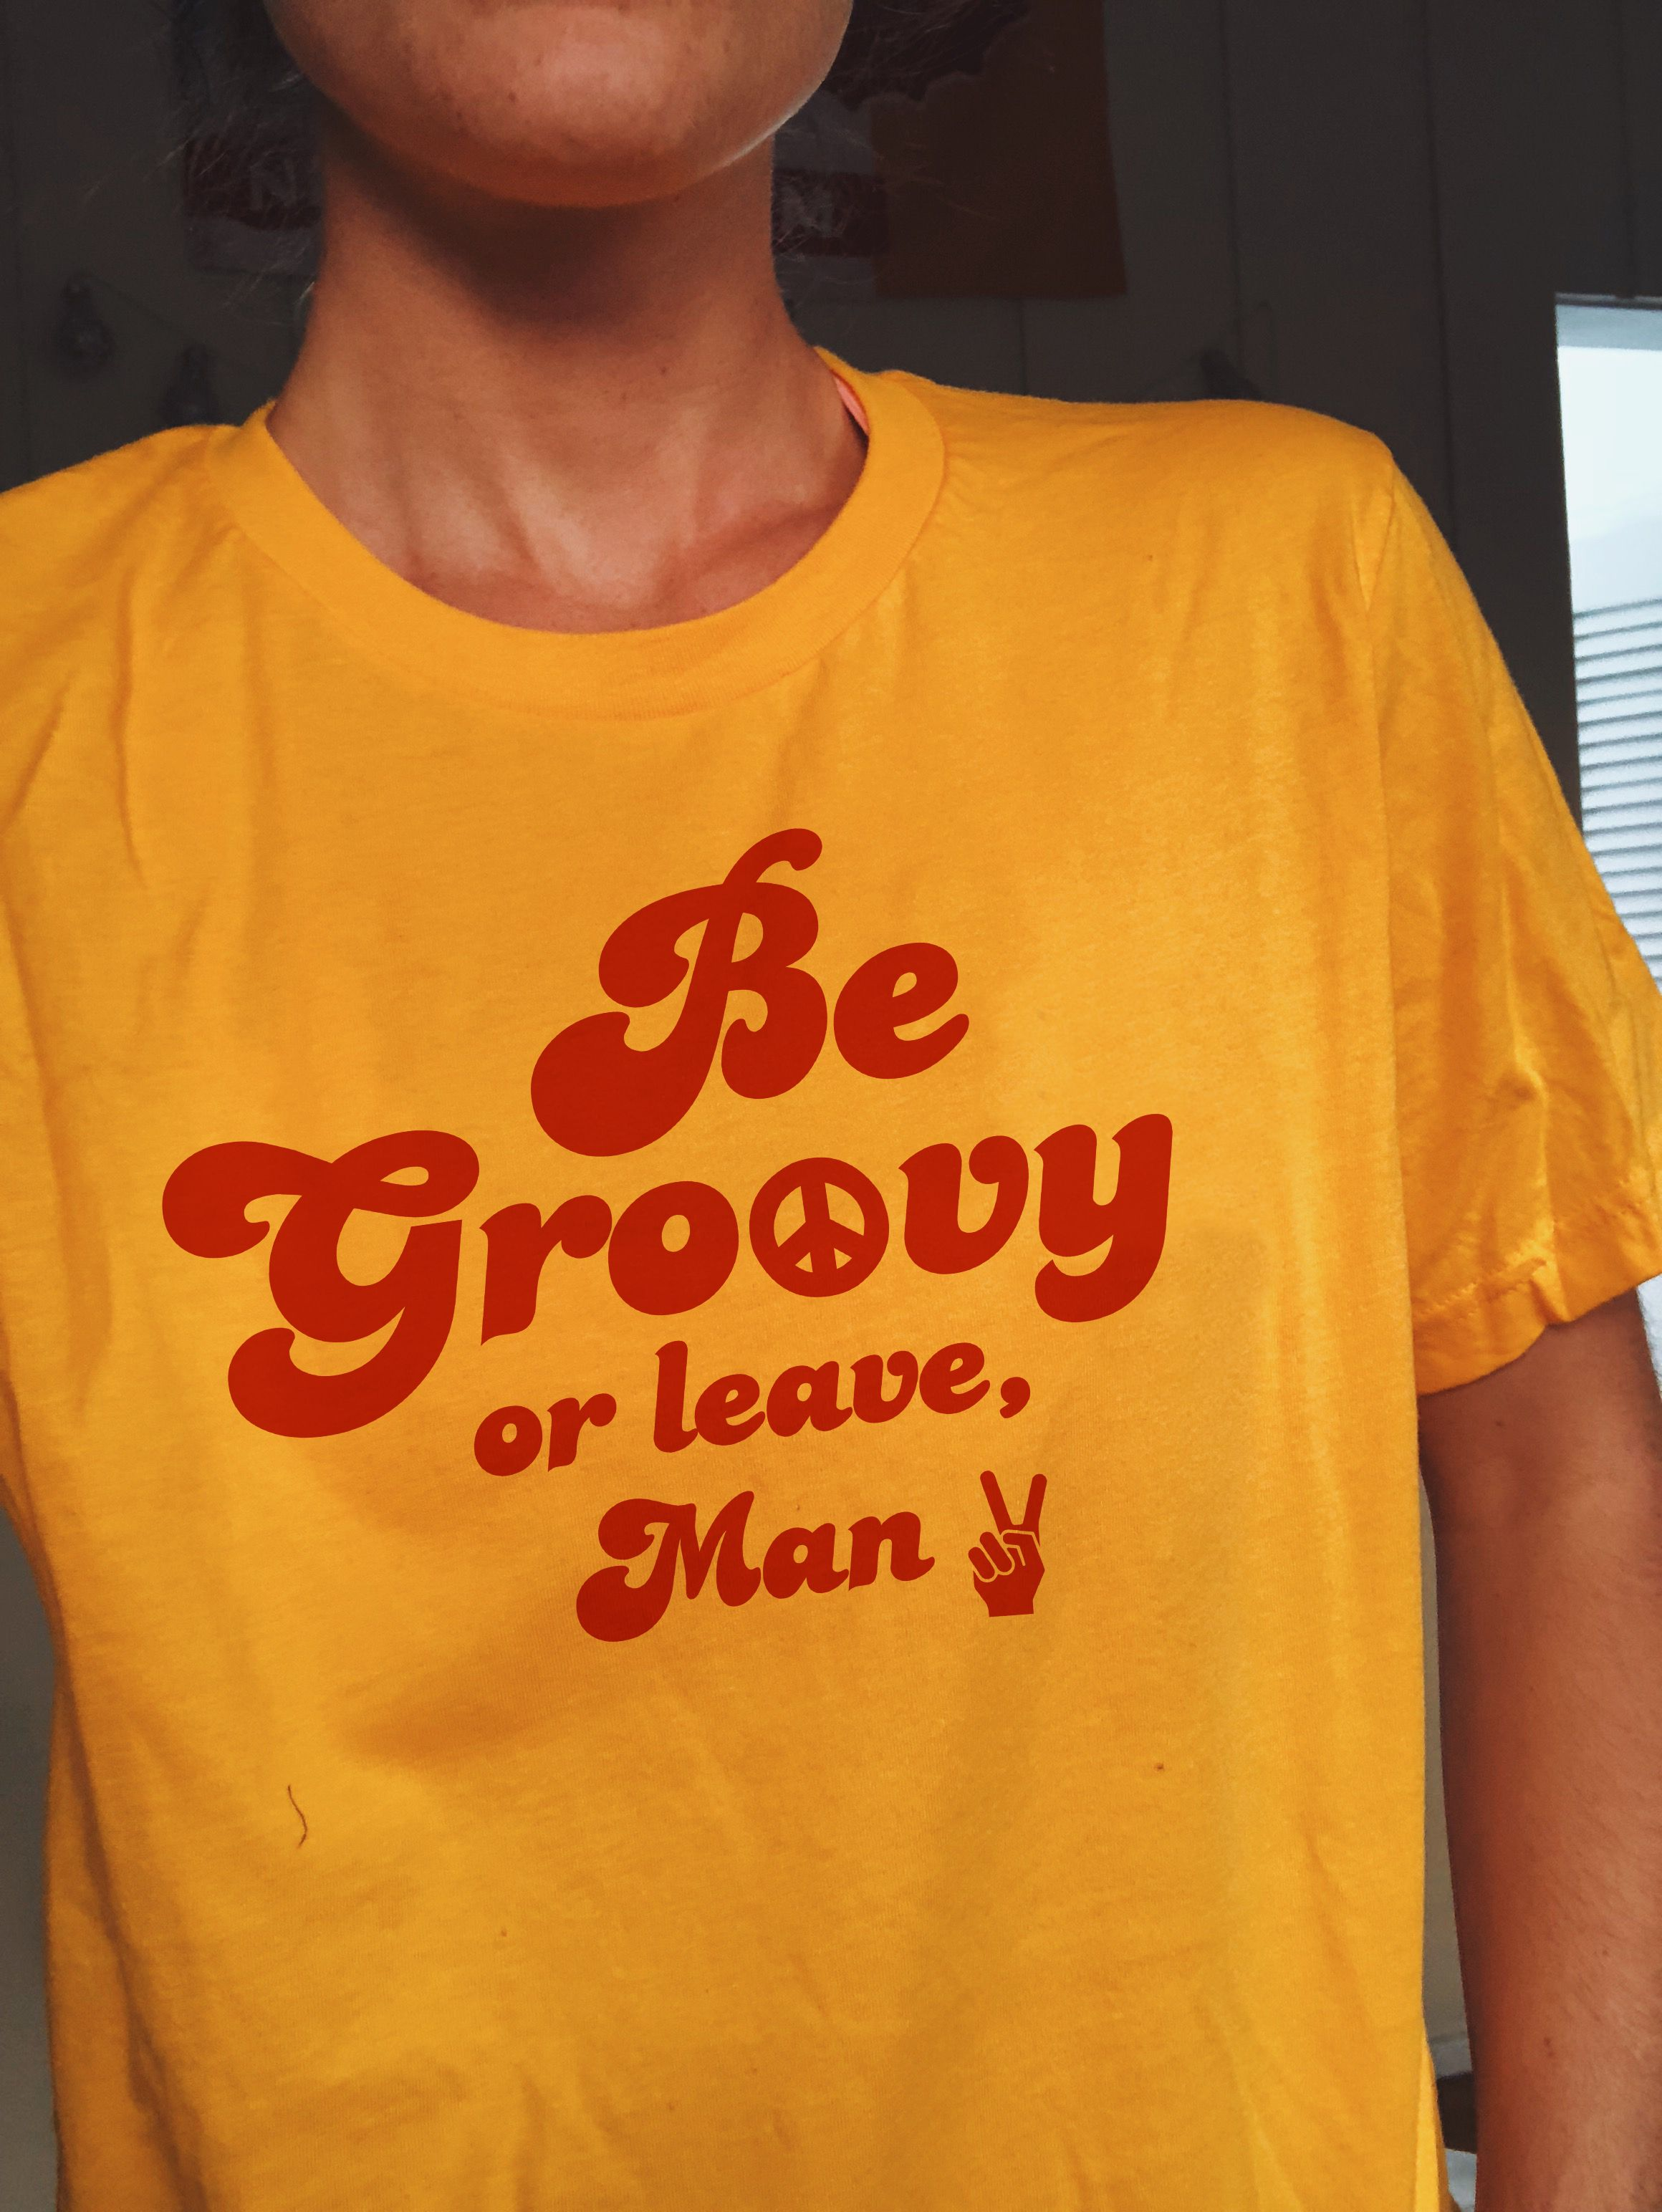 c4835d60 Be groovy or leave man retro yellow graphic t-shirt #graphictee #retro #